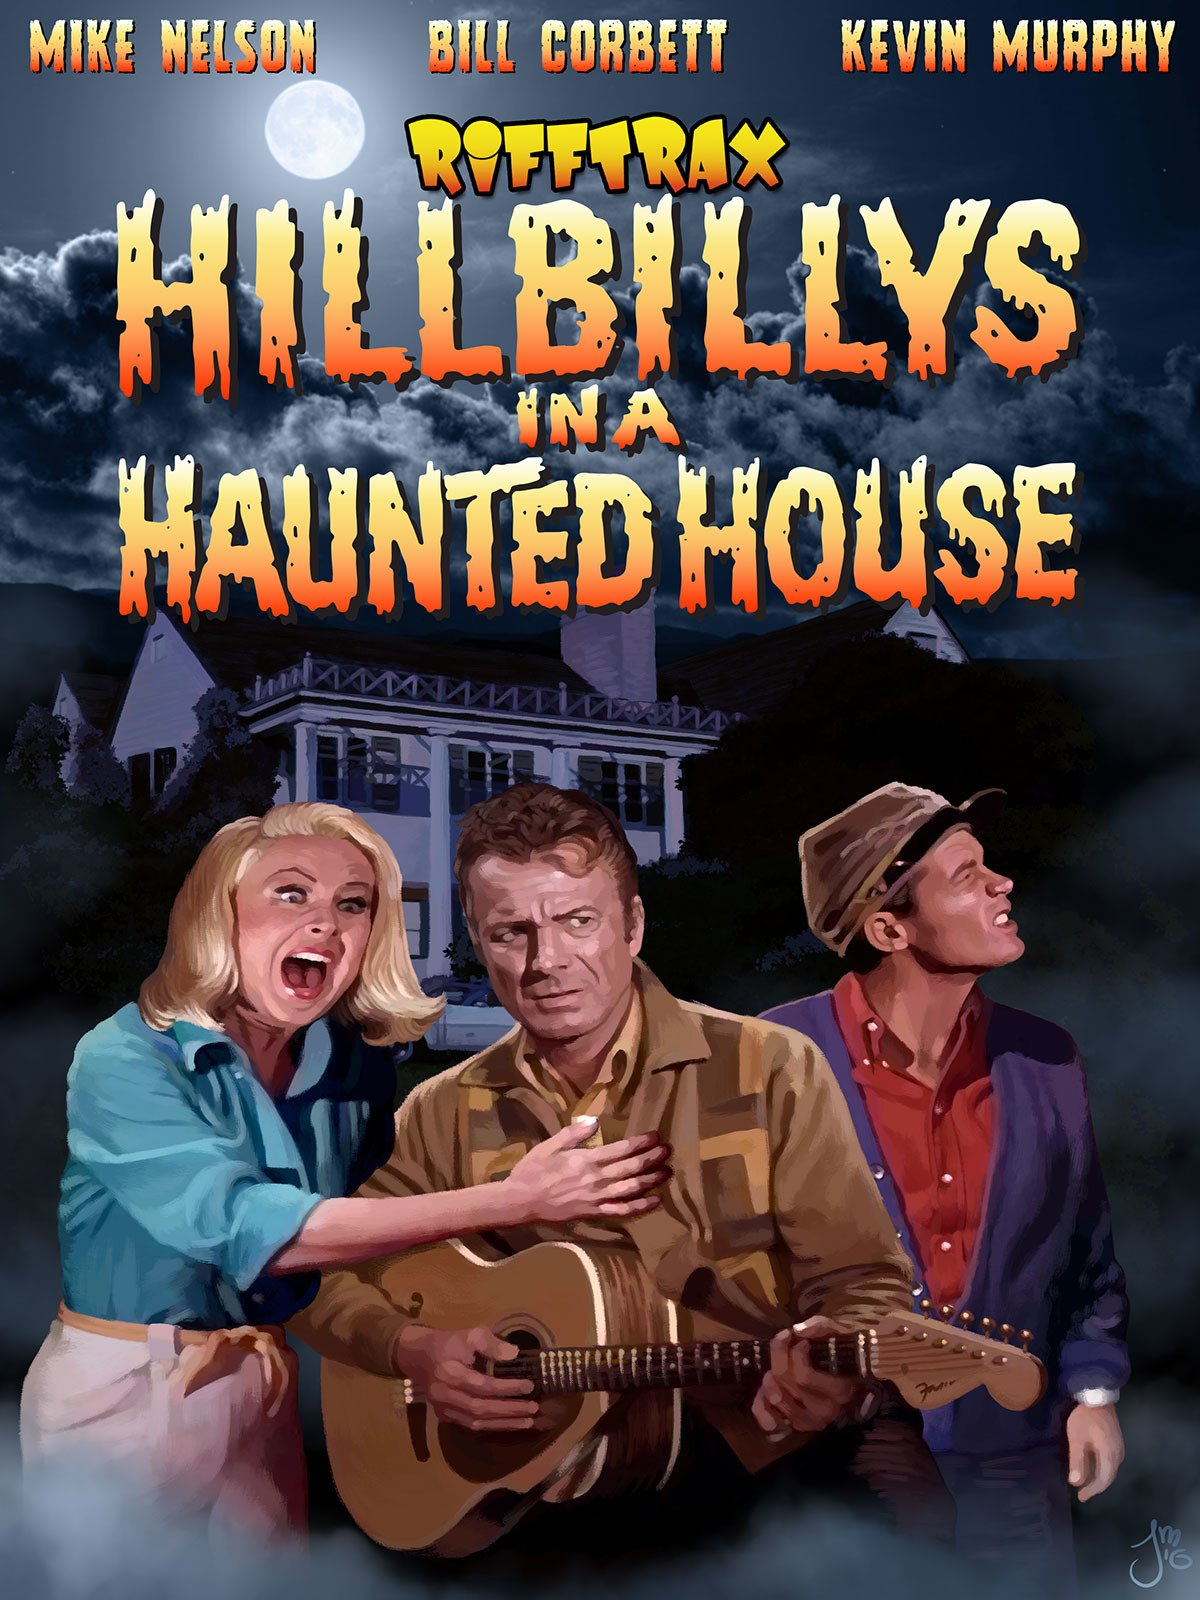 RiffTrax: Hillbillys in a Haunted House on Amazon Prime Video UK